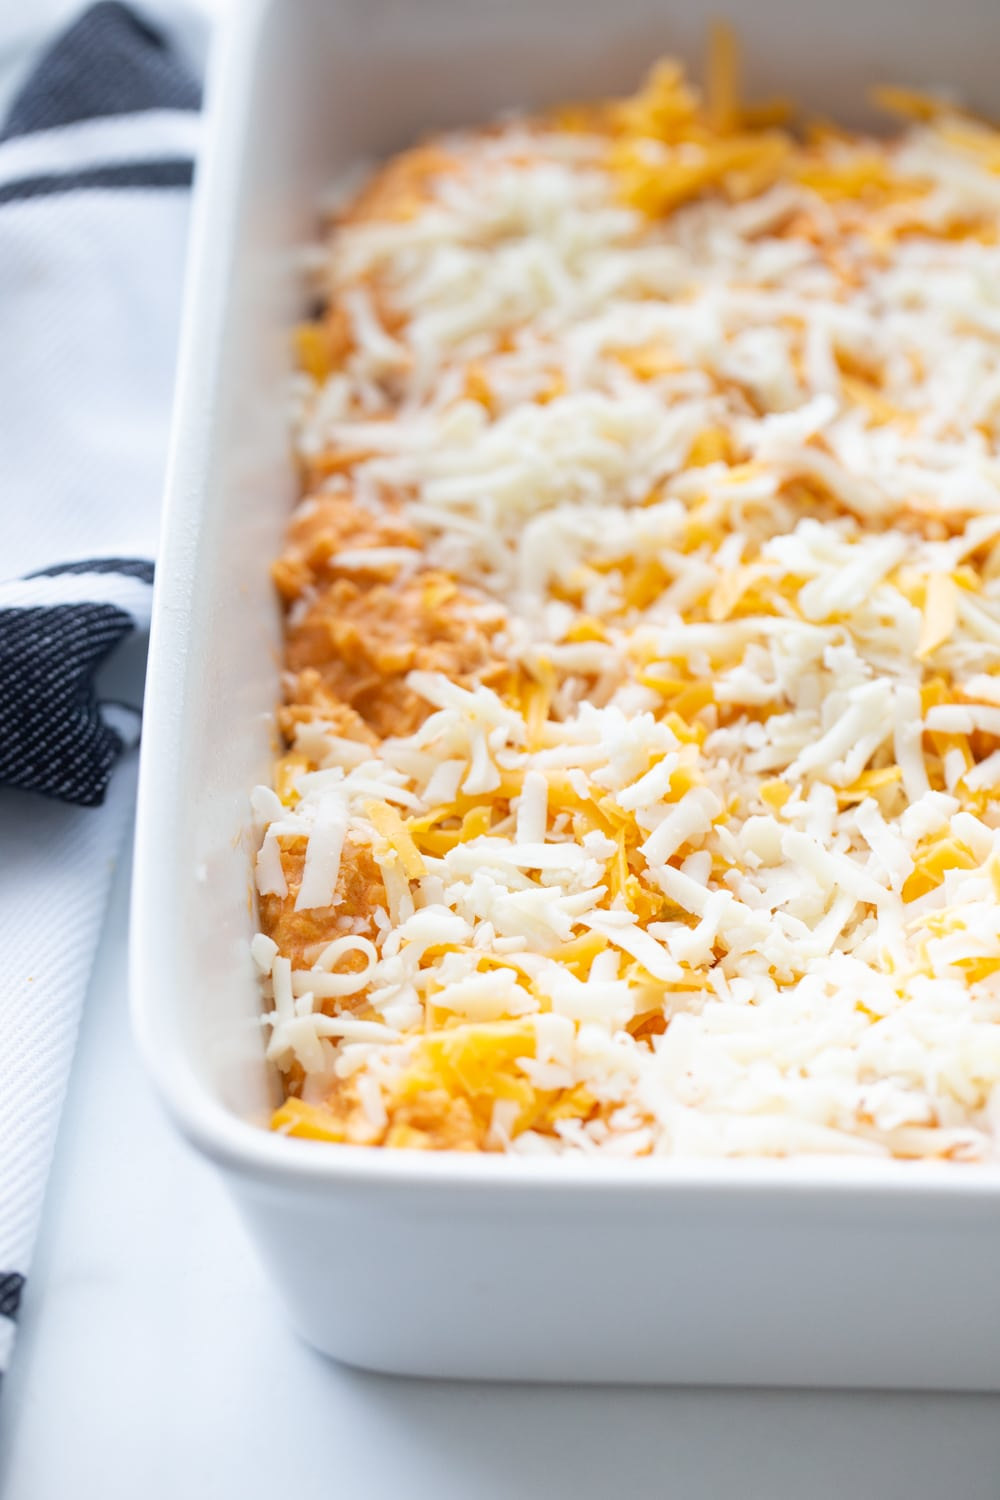 Shredded chicken covered in shredded cheeses in a white casserole dish.